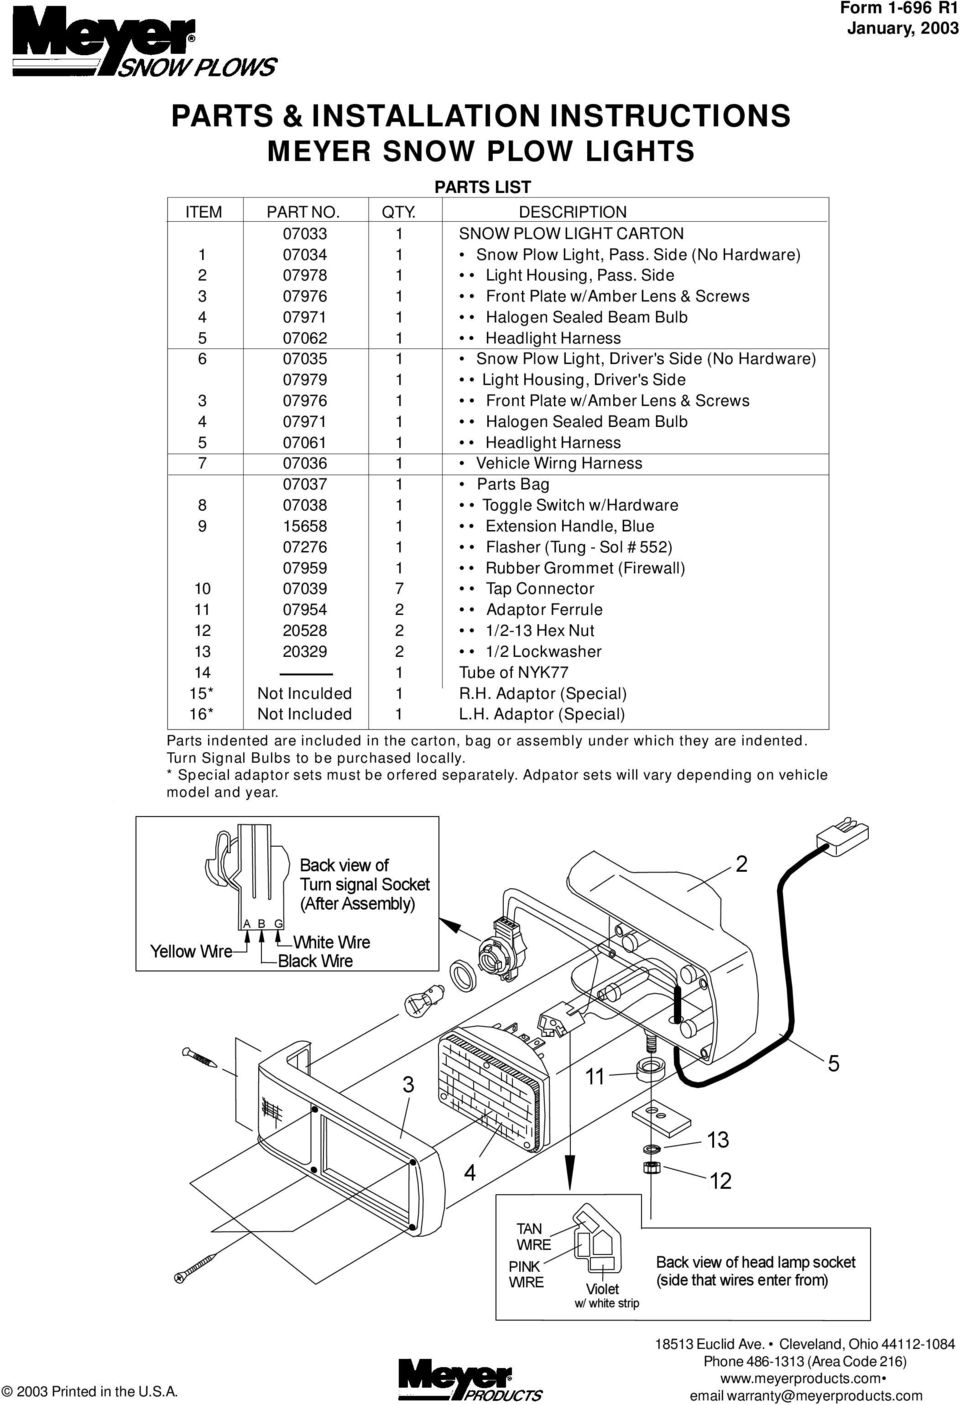 Parts Installation Instructions Meyer Snow Plow Lights Pdf 2009 R1 Wiring Diagram Front Side 3 07976 1 Plate W Amber Lens Screws 4 07971 Halogen